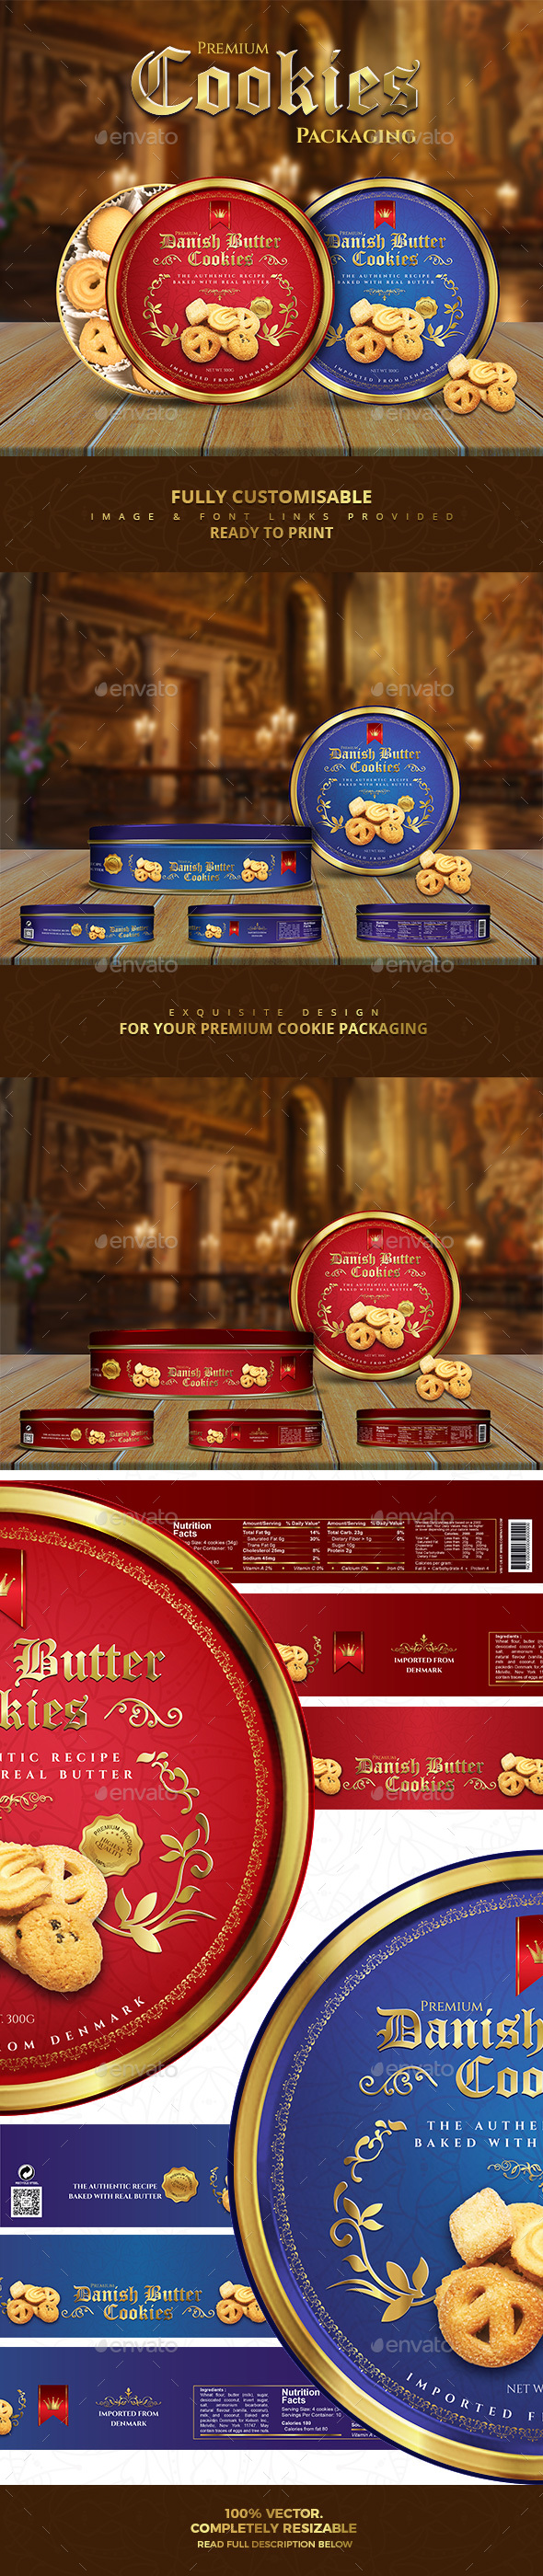 Premium Cookies Packaging - Packaging Print Templates